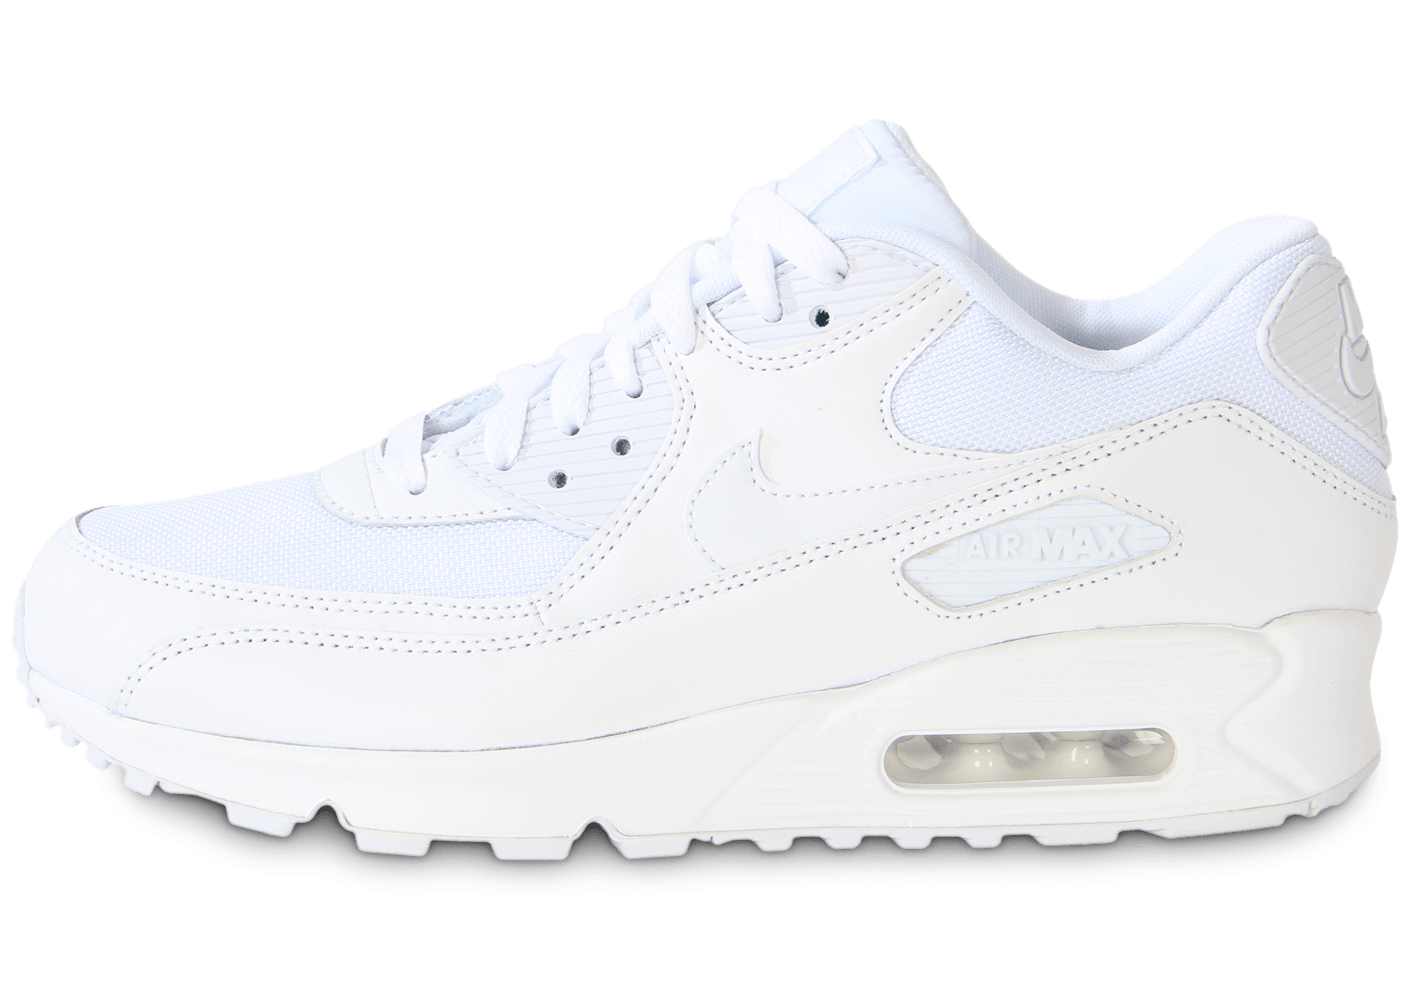 low priced ec208 6ddb1 Nike Air Max 90 Essential Blanche - Chaussures Baskets homme